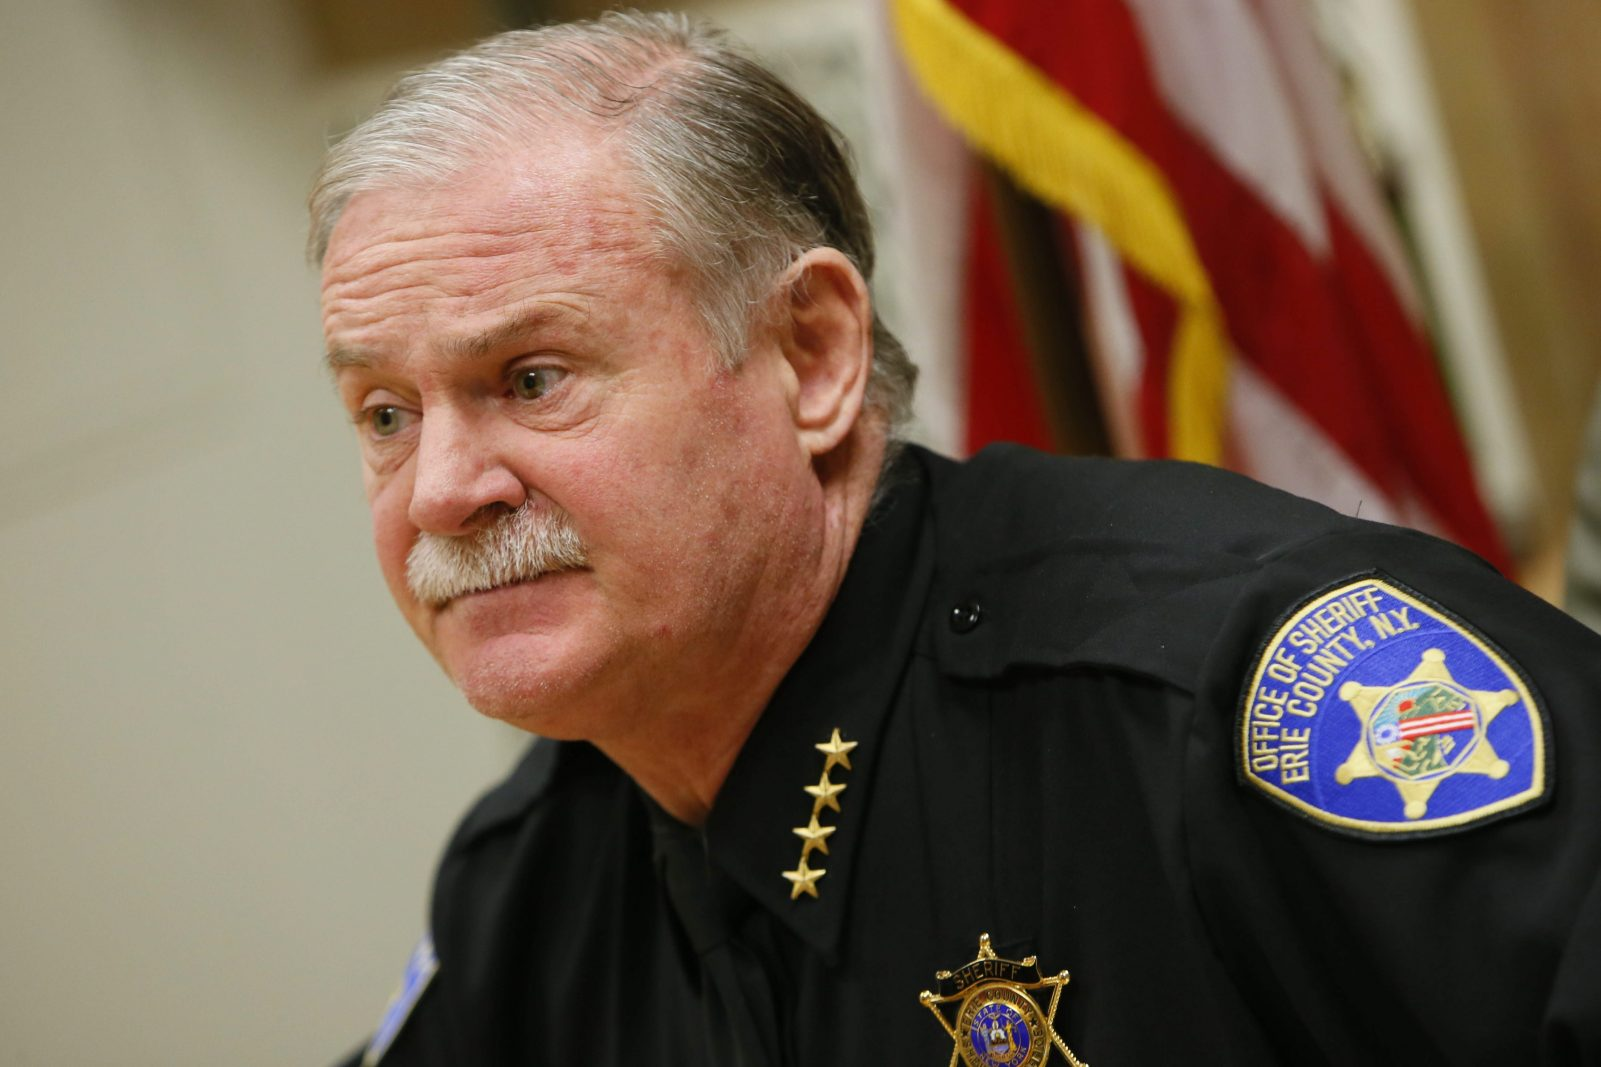 Erie County Sheriff Tim Howard pictured in 2013. (News file photo)